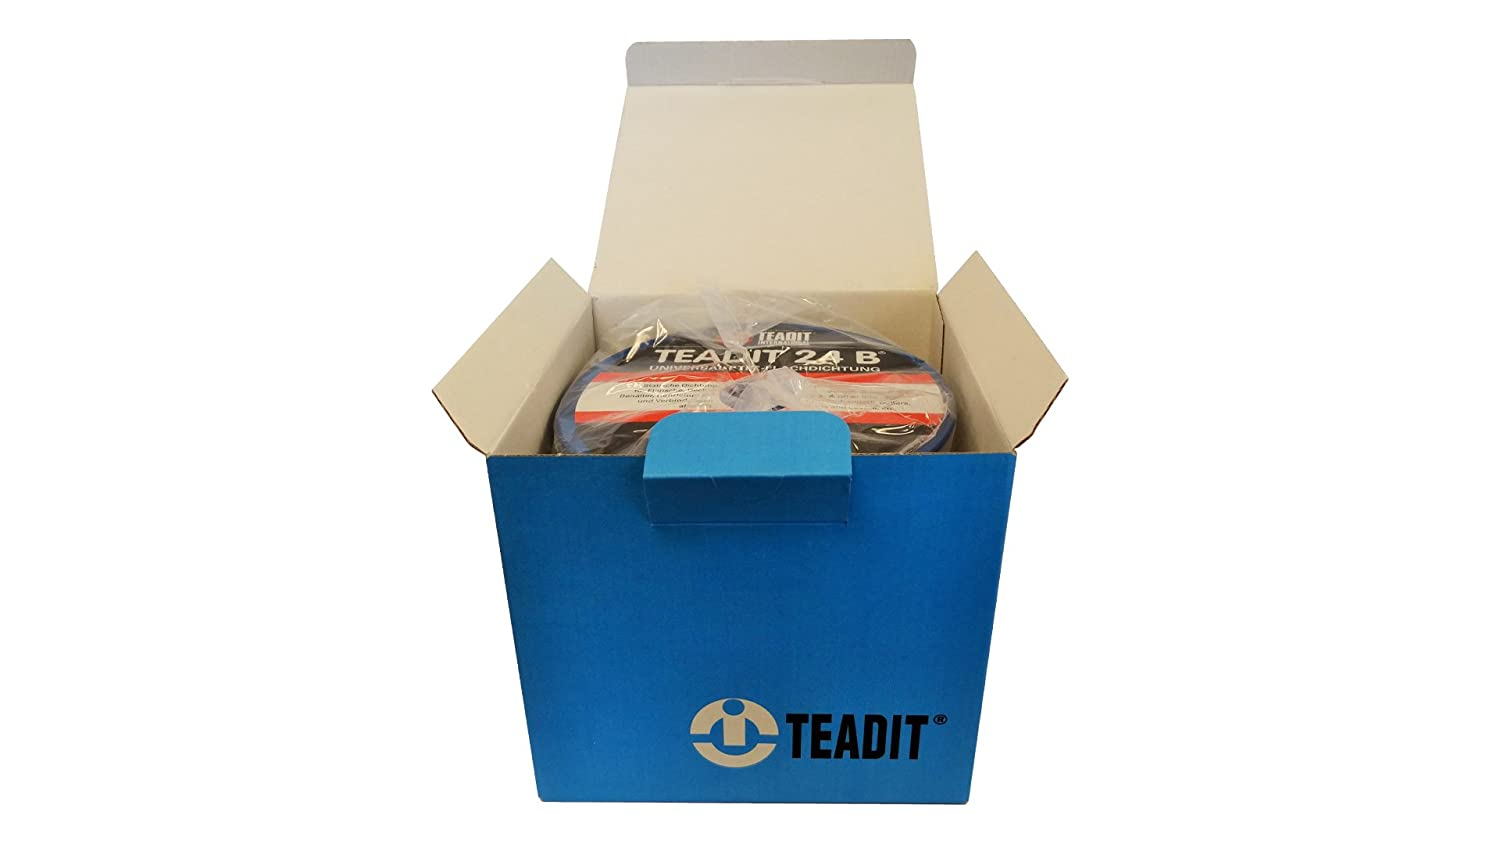 Sterling Seal and Supply STCC 1500.12550 1500 Teadit 24B White PTFE Joint Sealant for Applications in Steel Glass Lined PVC and Fiber Glass Pipe Flanges Fume Ducts Concrete Lids Heat Exchangers 1 8 Wide 50'